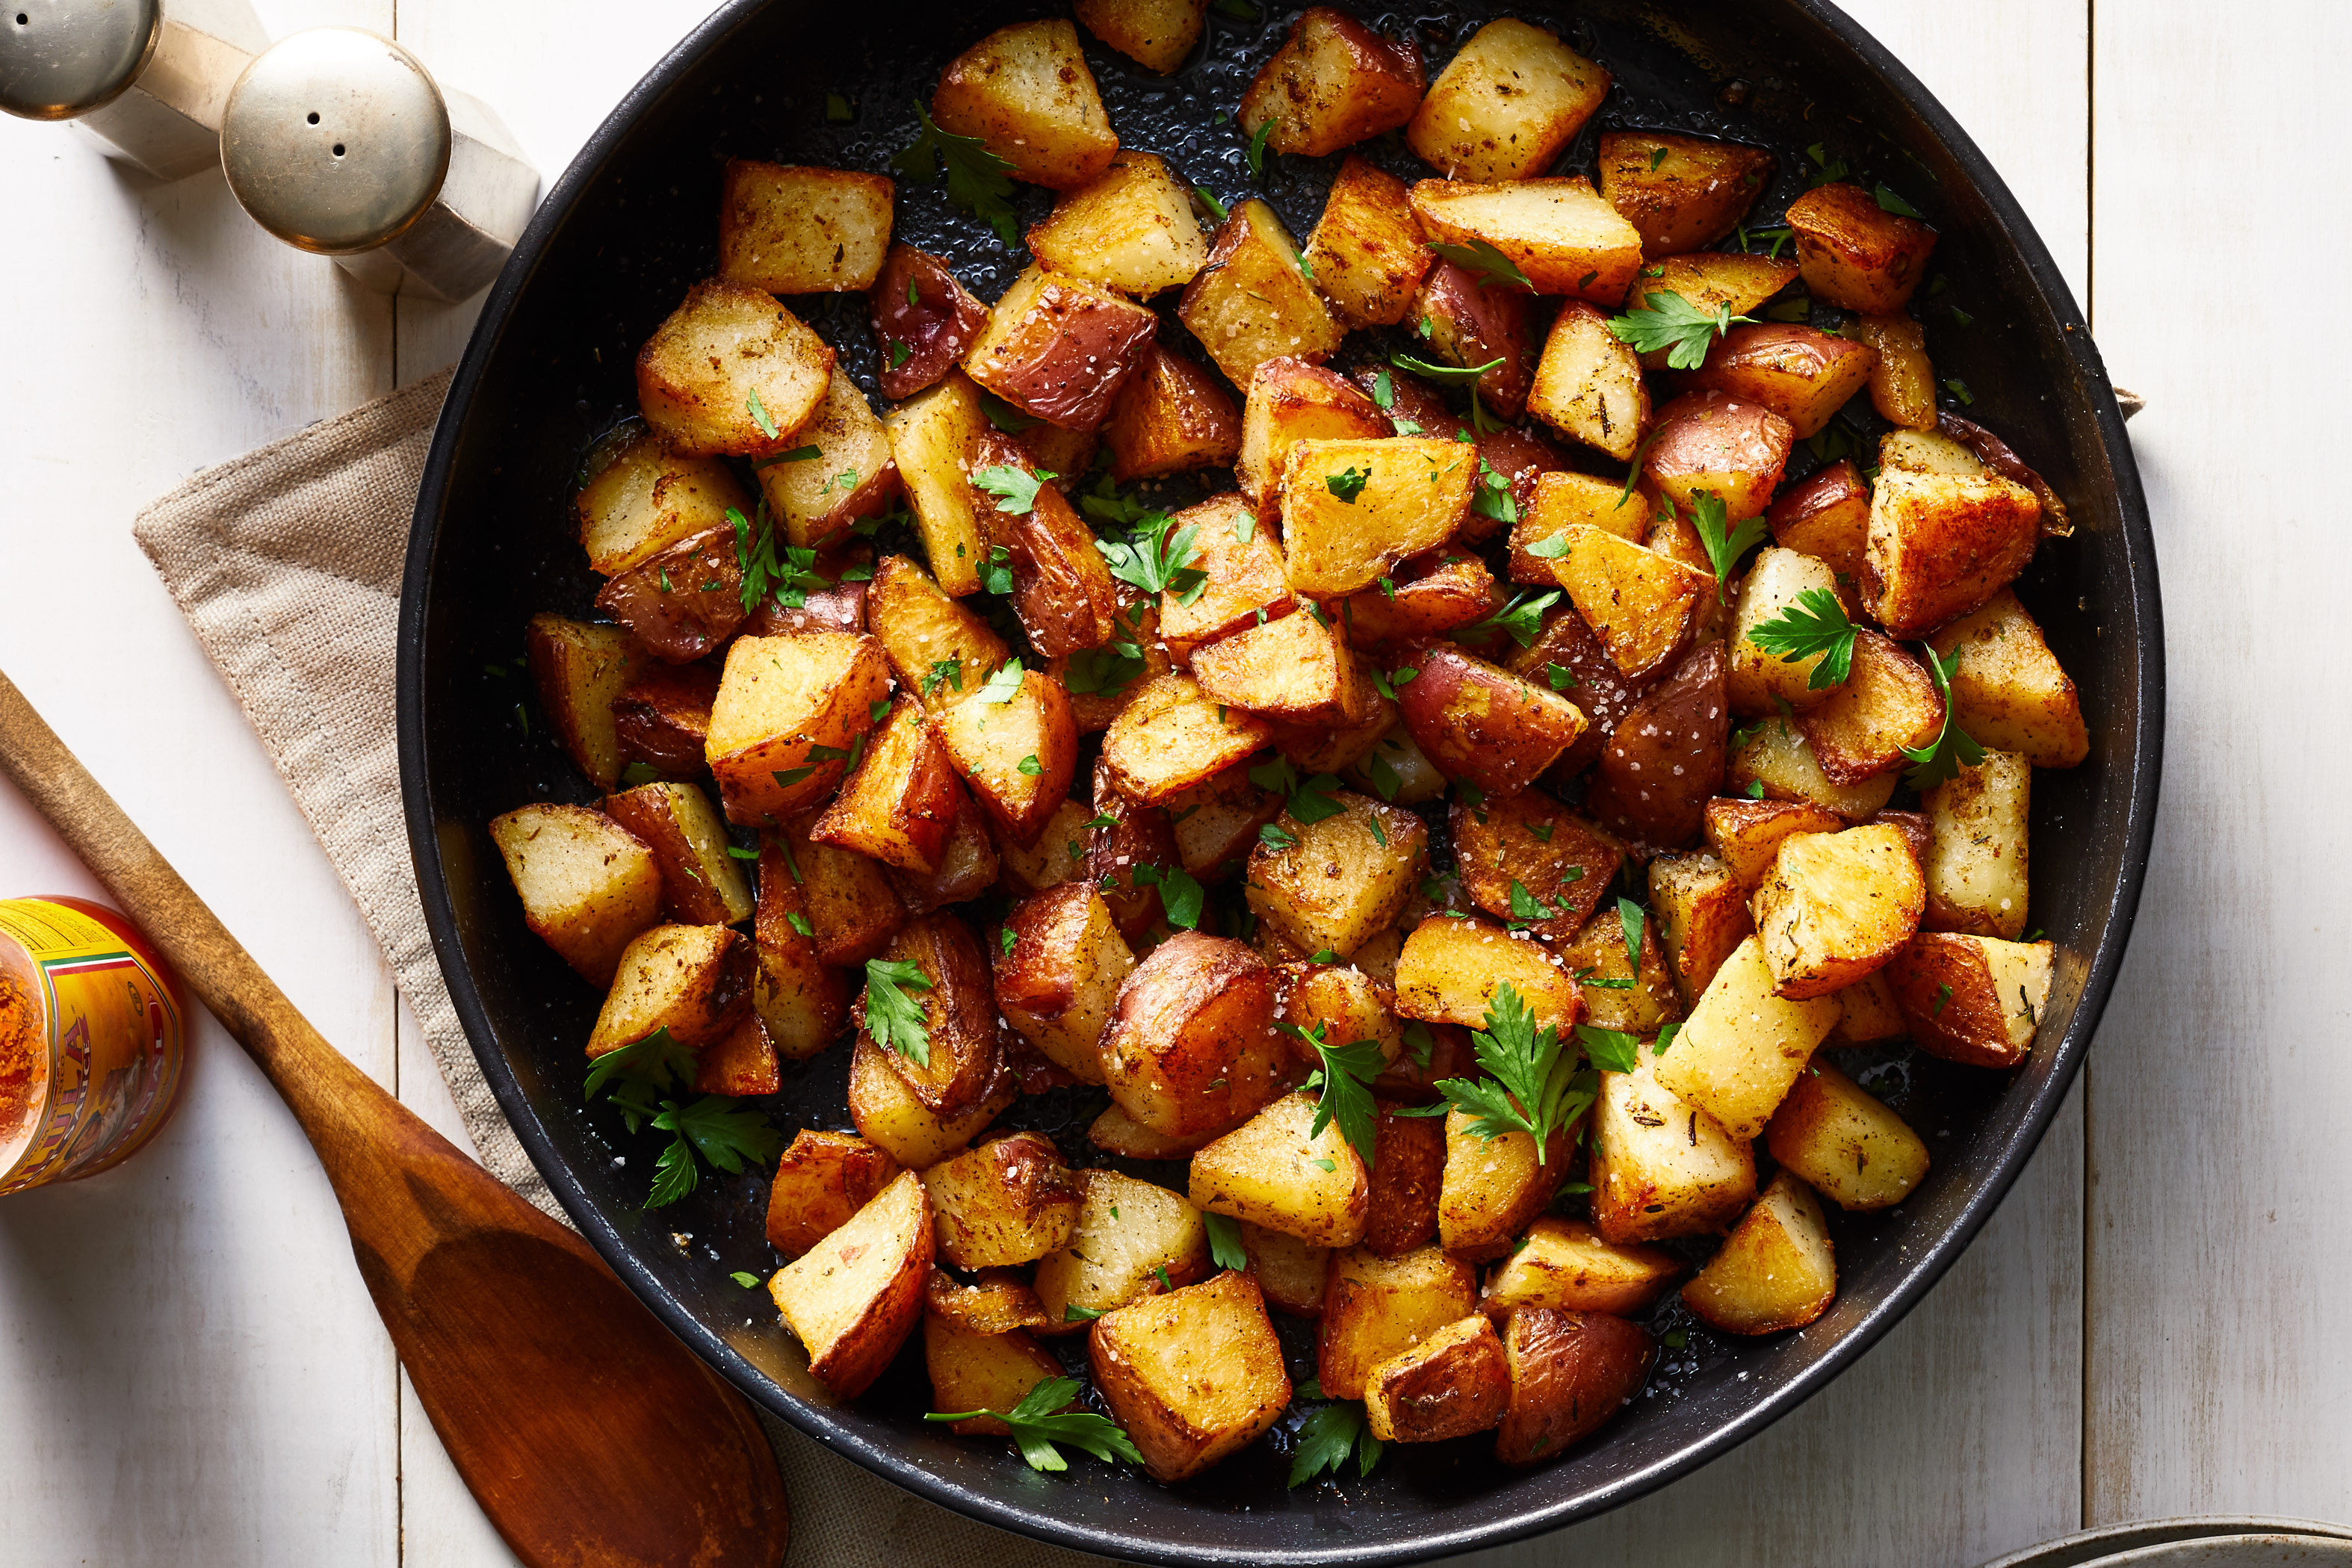 Fried Skillet Potatoes